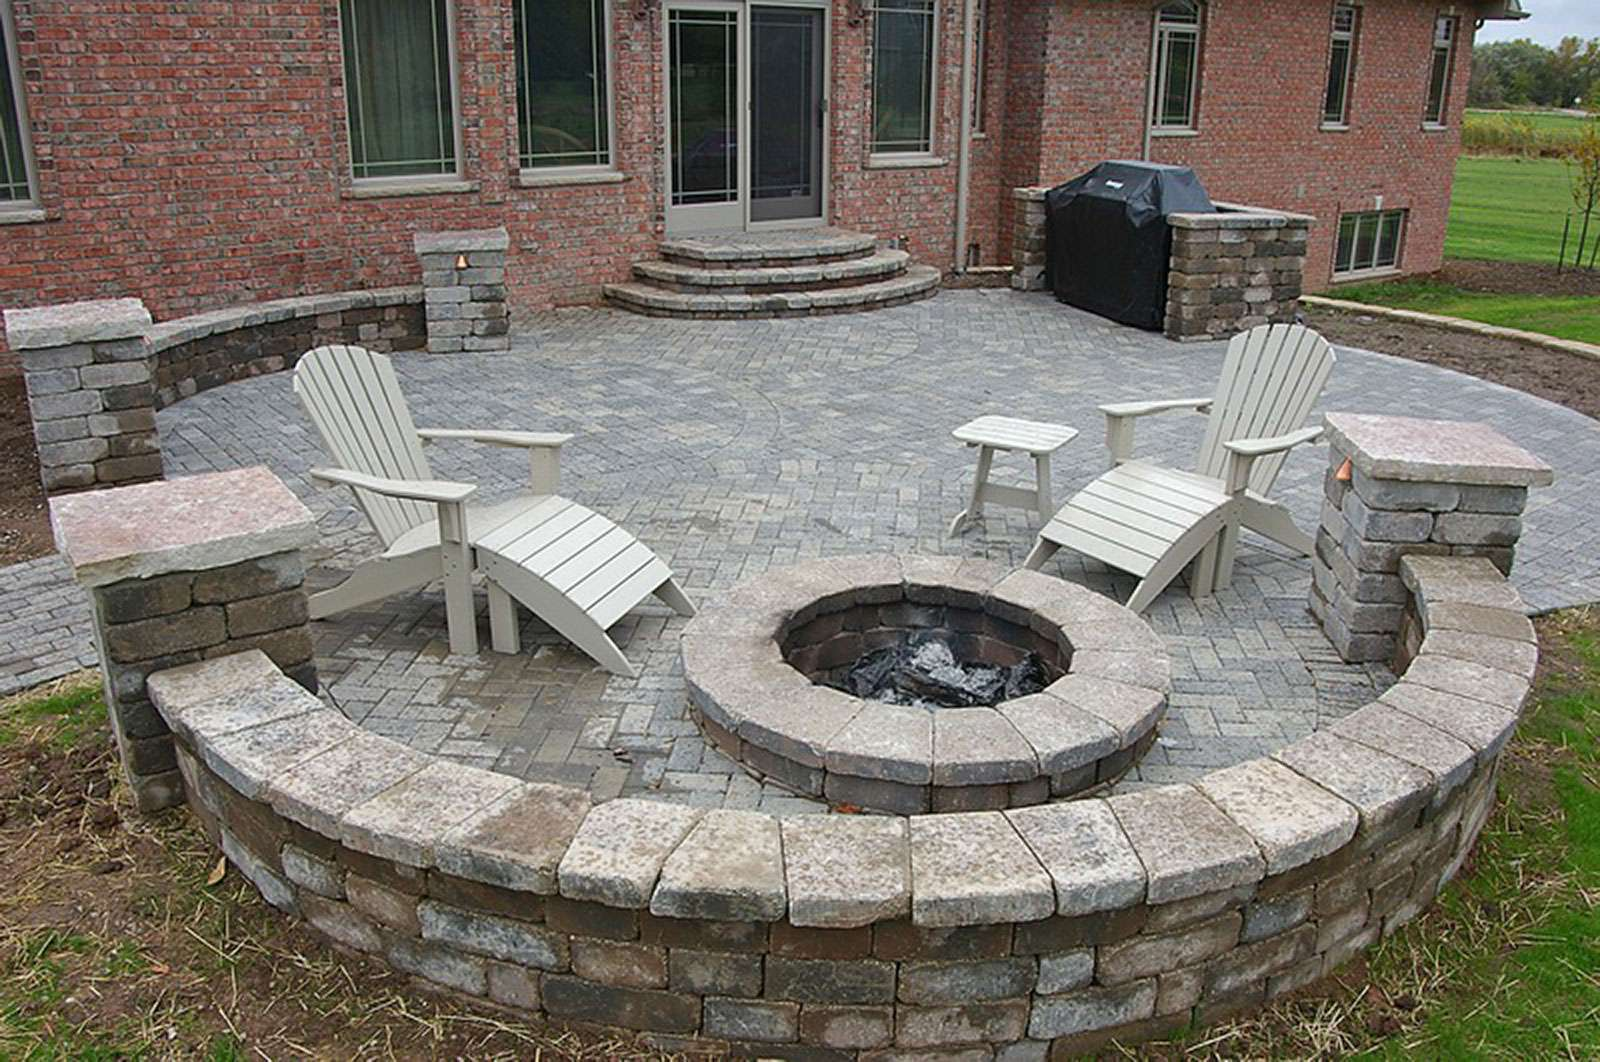 Fire Pit and Landscape Design, in Appleton, WI on Garden Ideas With Fire Pit id=85945